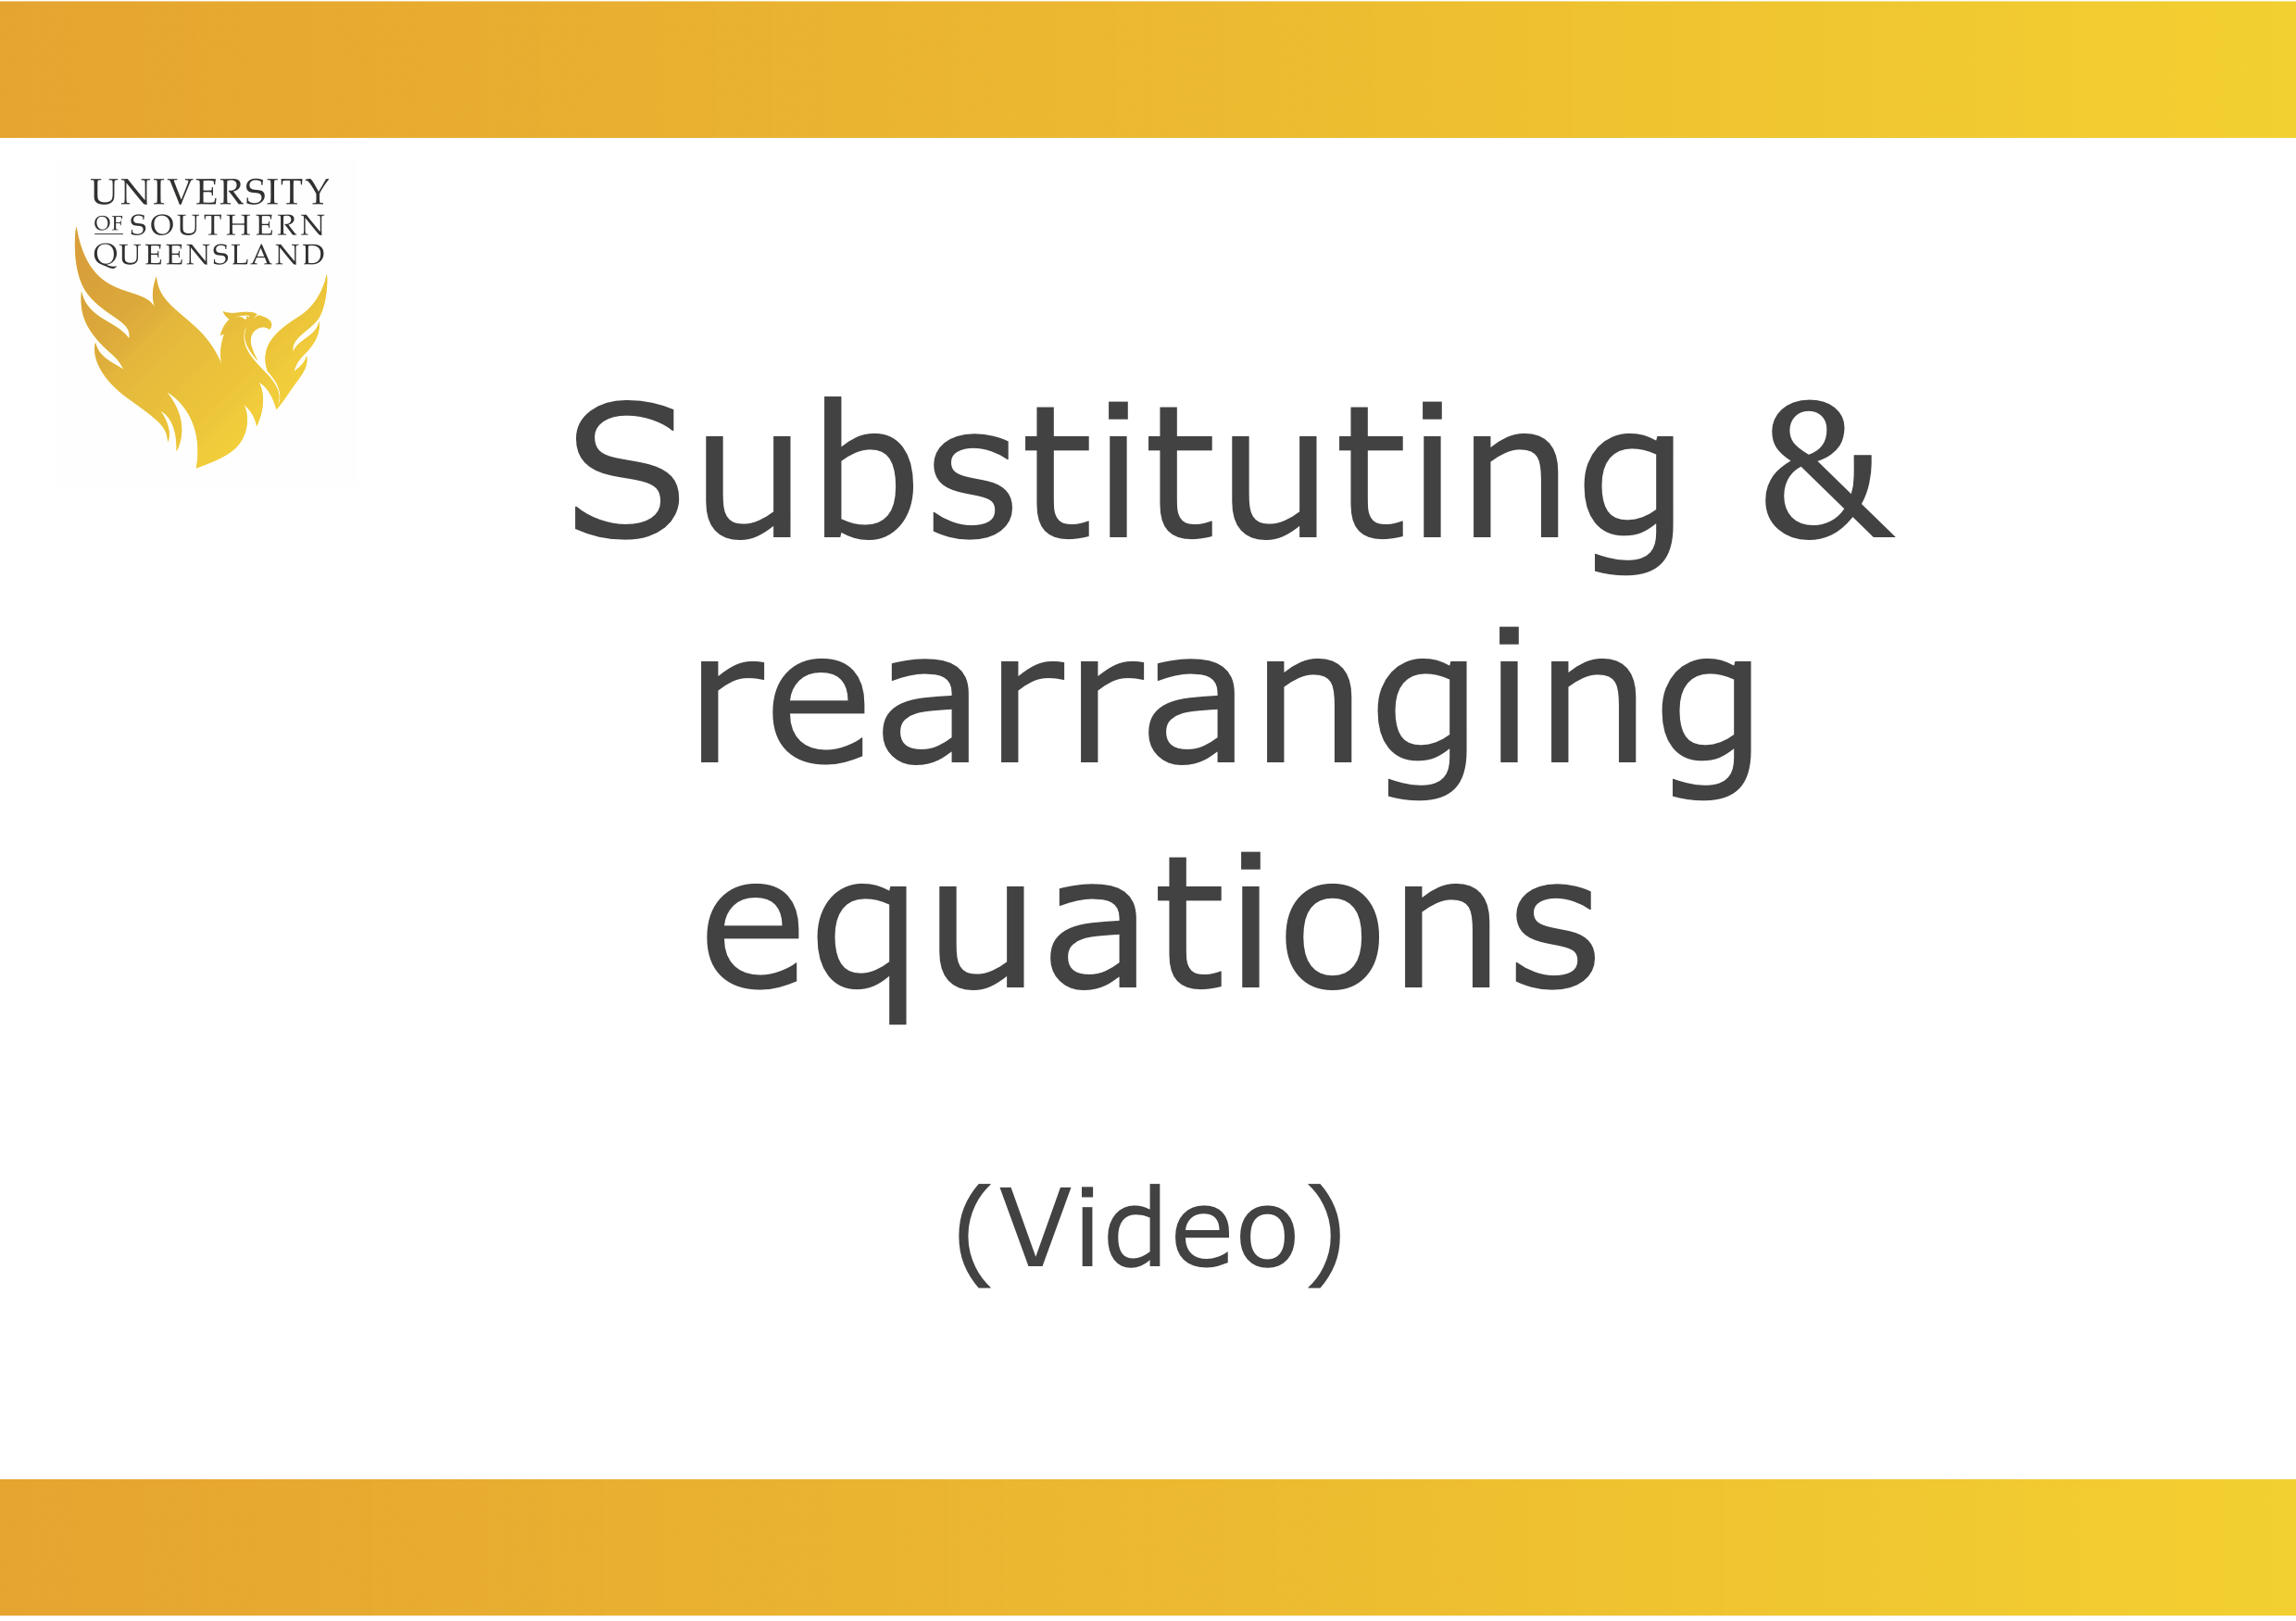 Substituting and rearrange equations video